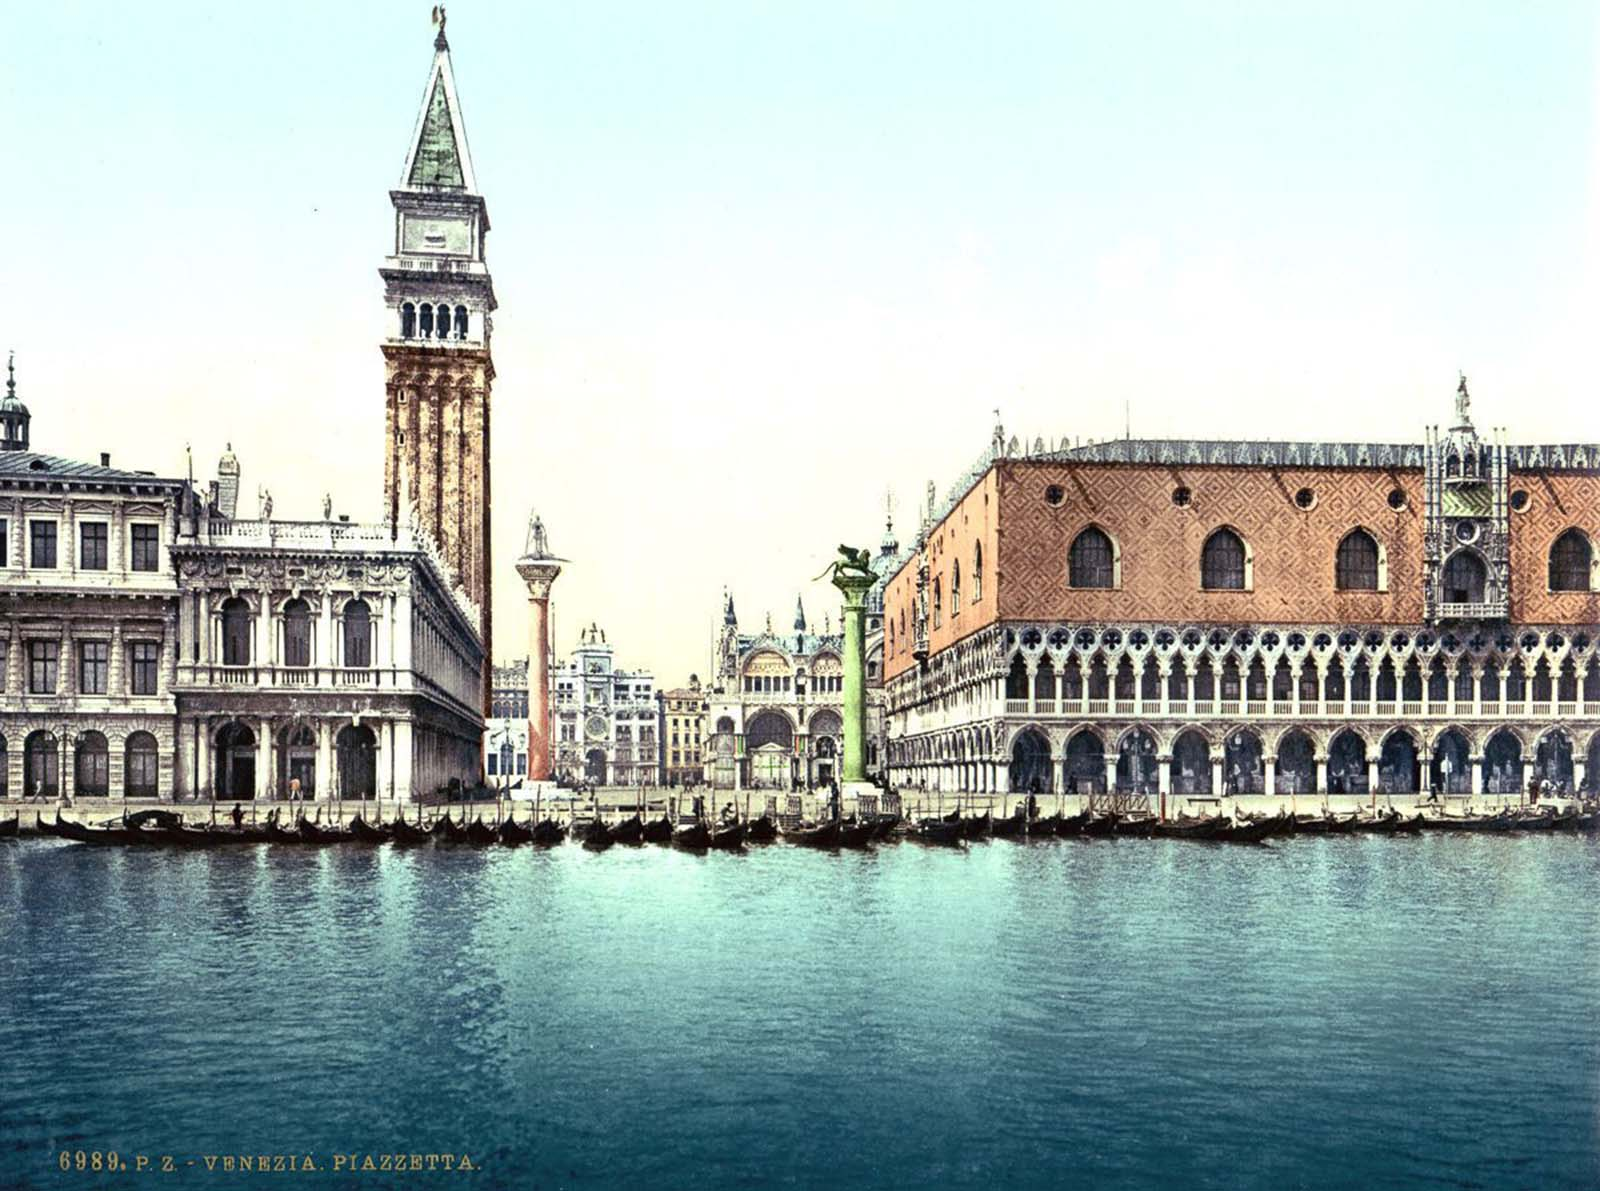 venice-in-beautiful-old-color-images-1890_8.jpg